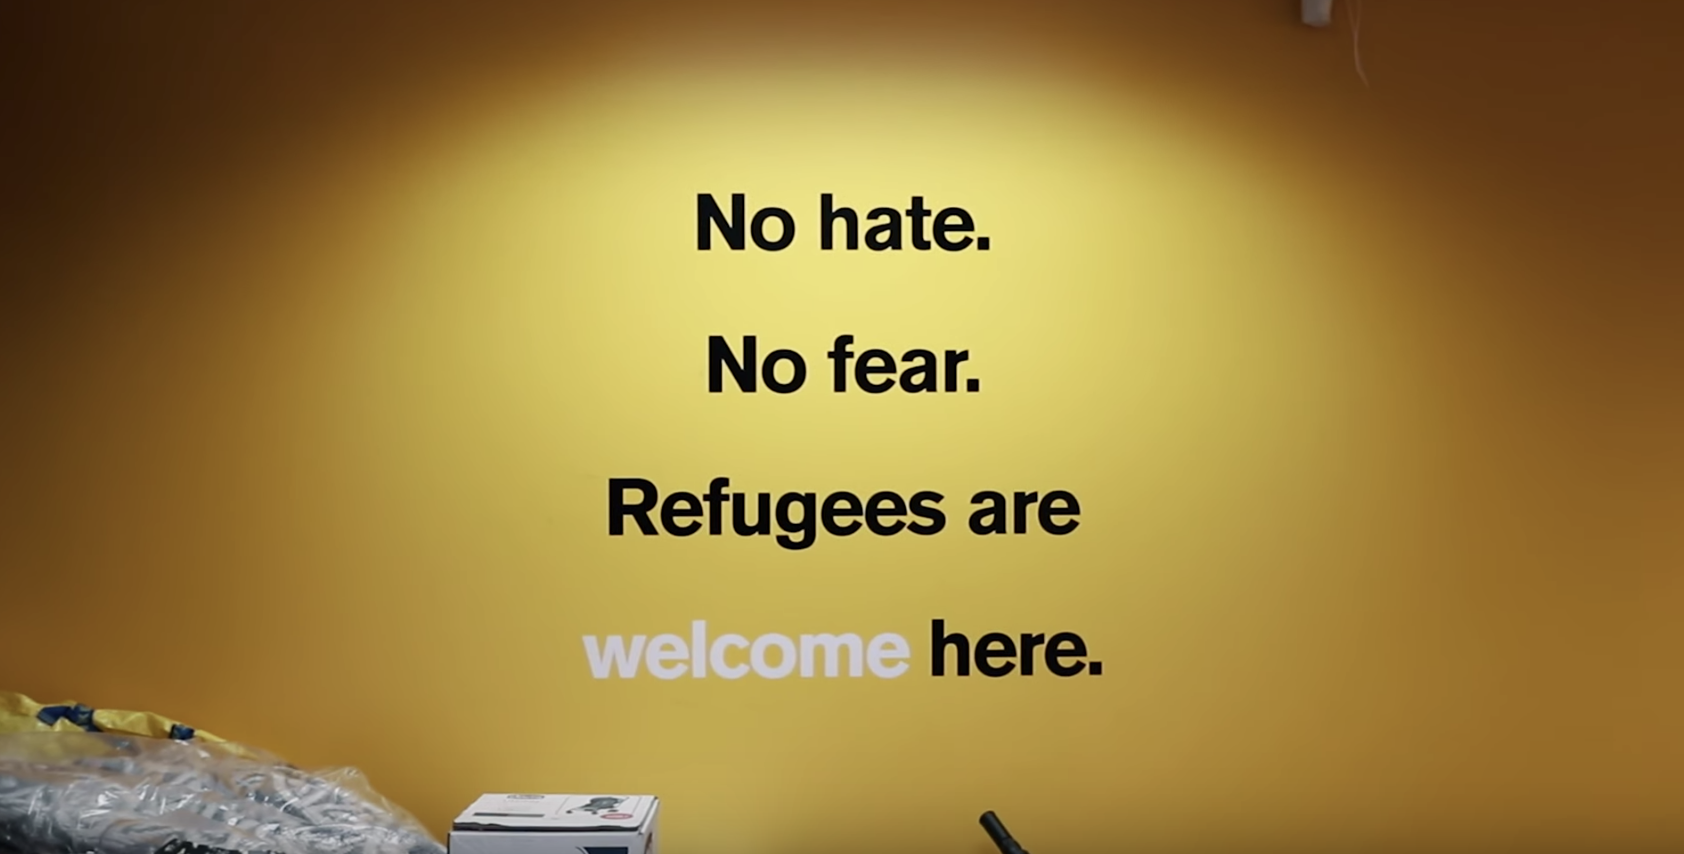 refugees are welcome NOMATIC gives back for the holidays